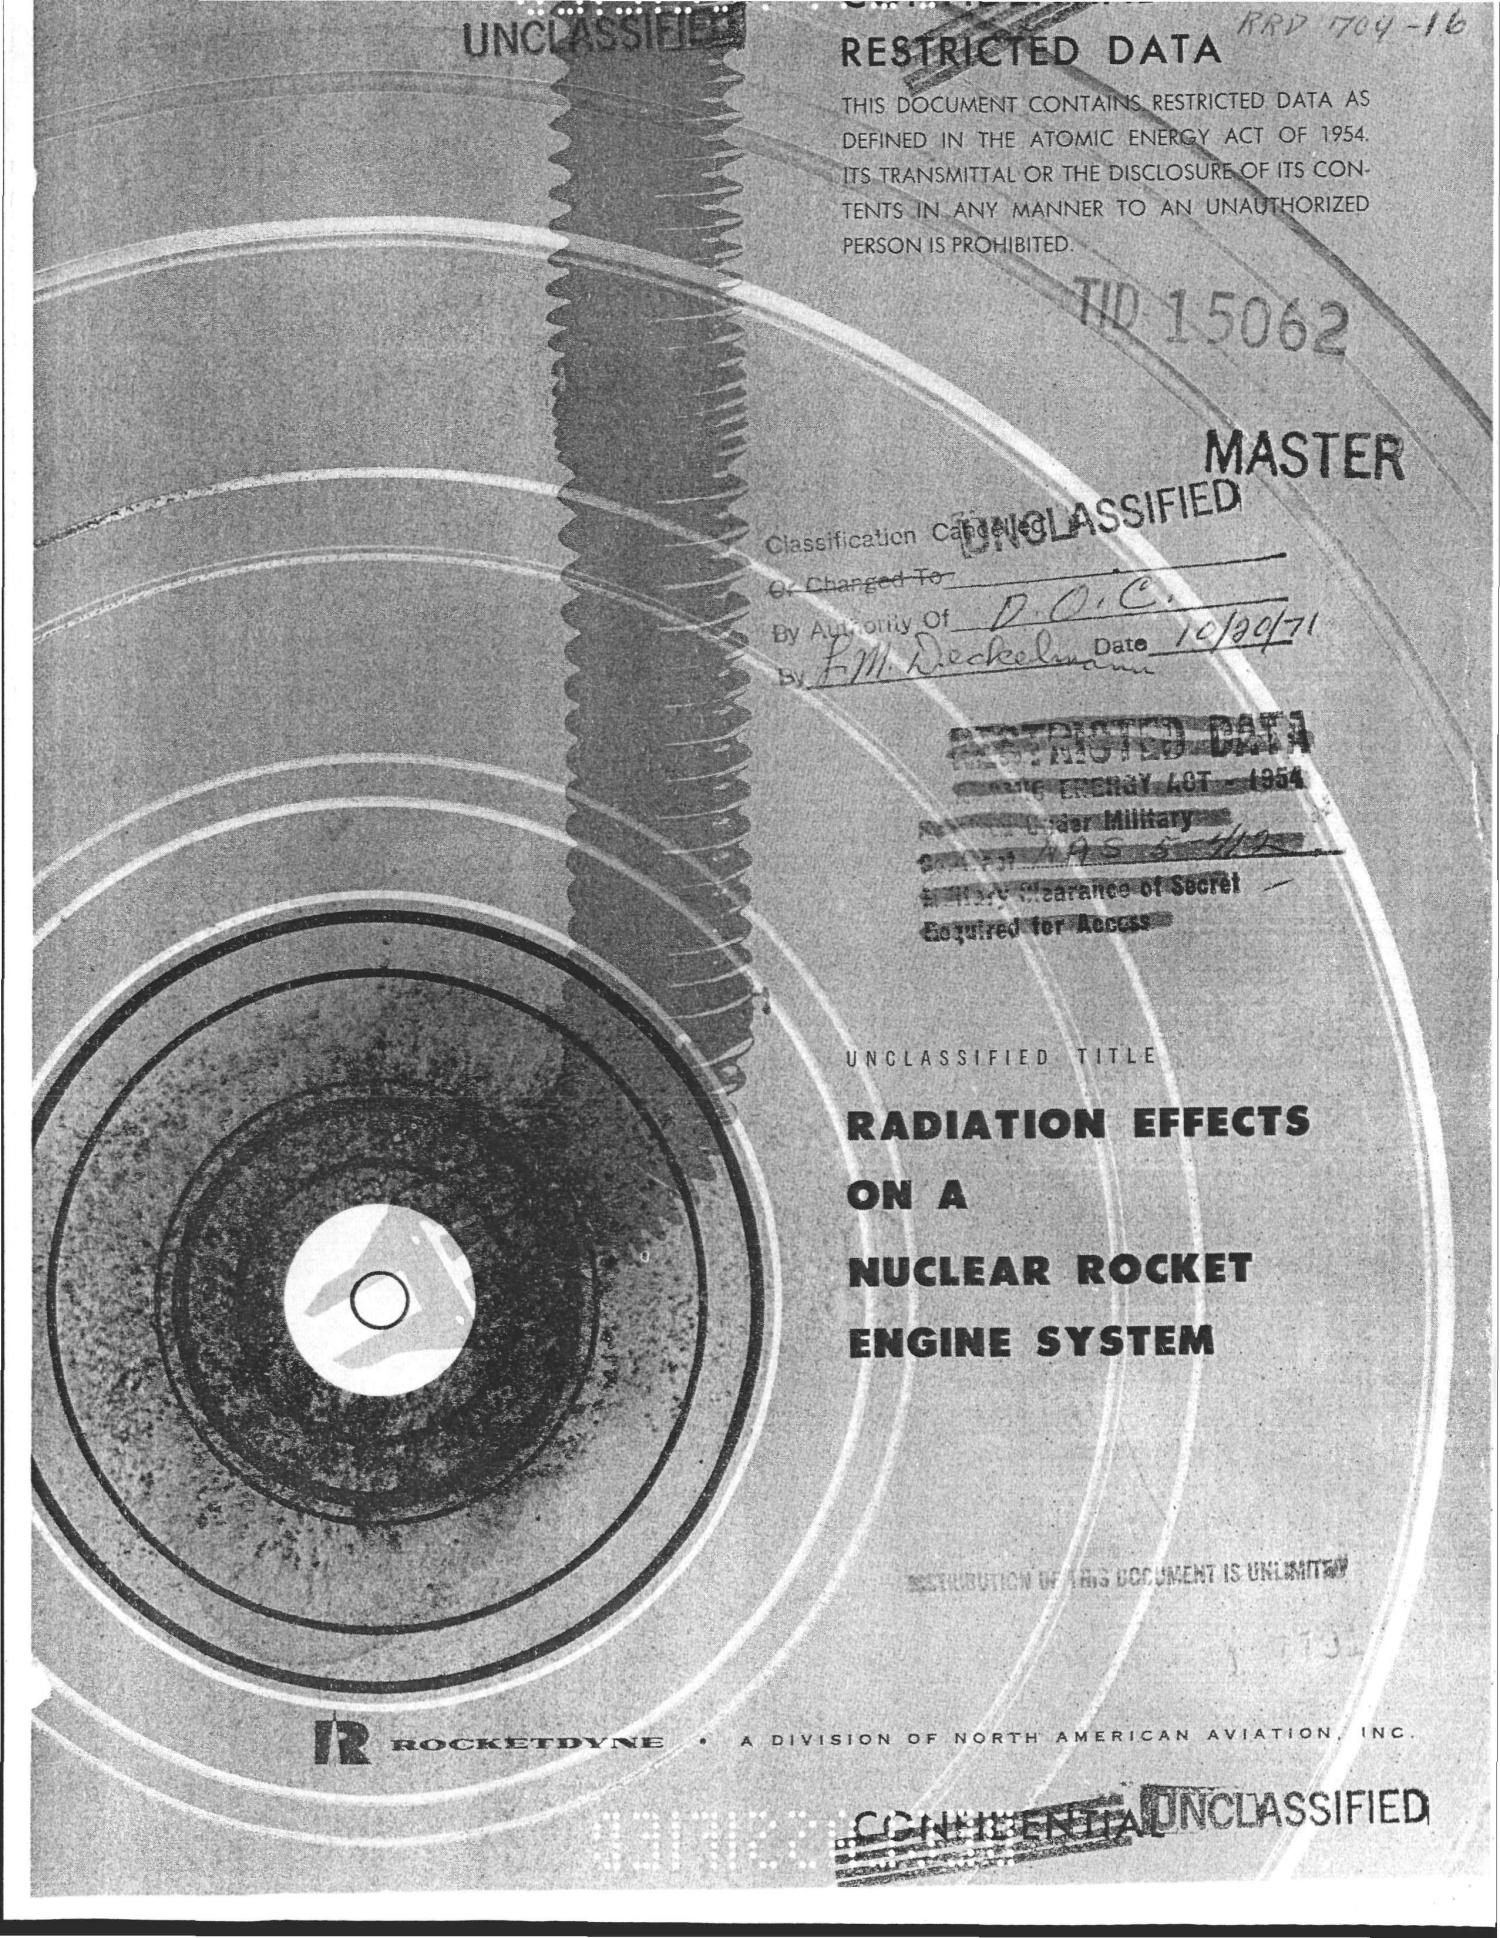 RADIATION EFFECTS ON A NUCLEAR ROCKET ENGINE SYSTEM. Final Report.                                                                                                      [Sequence #]: 1 of 269